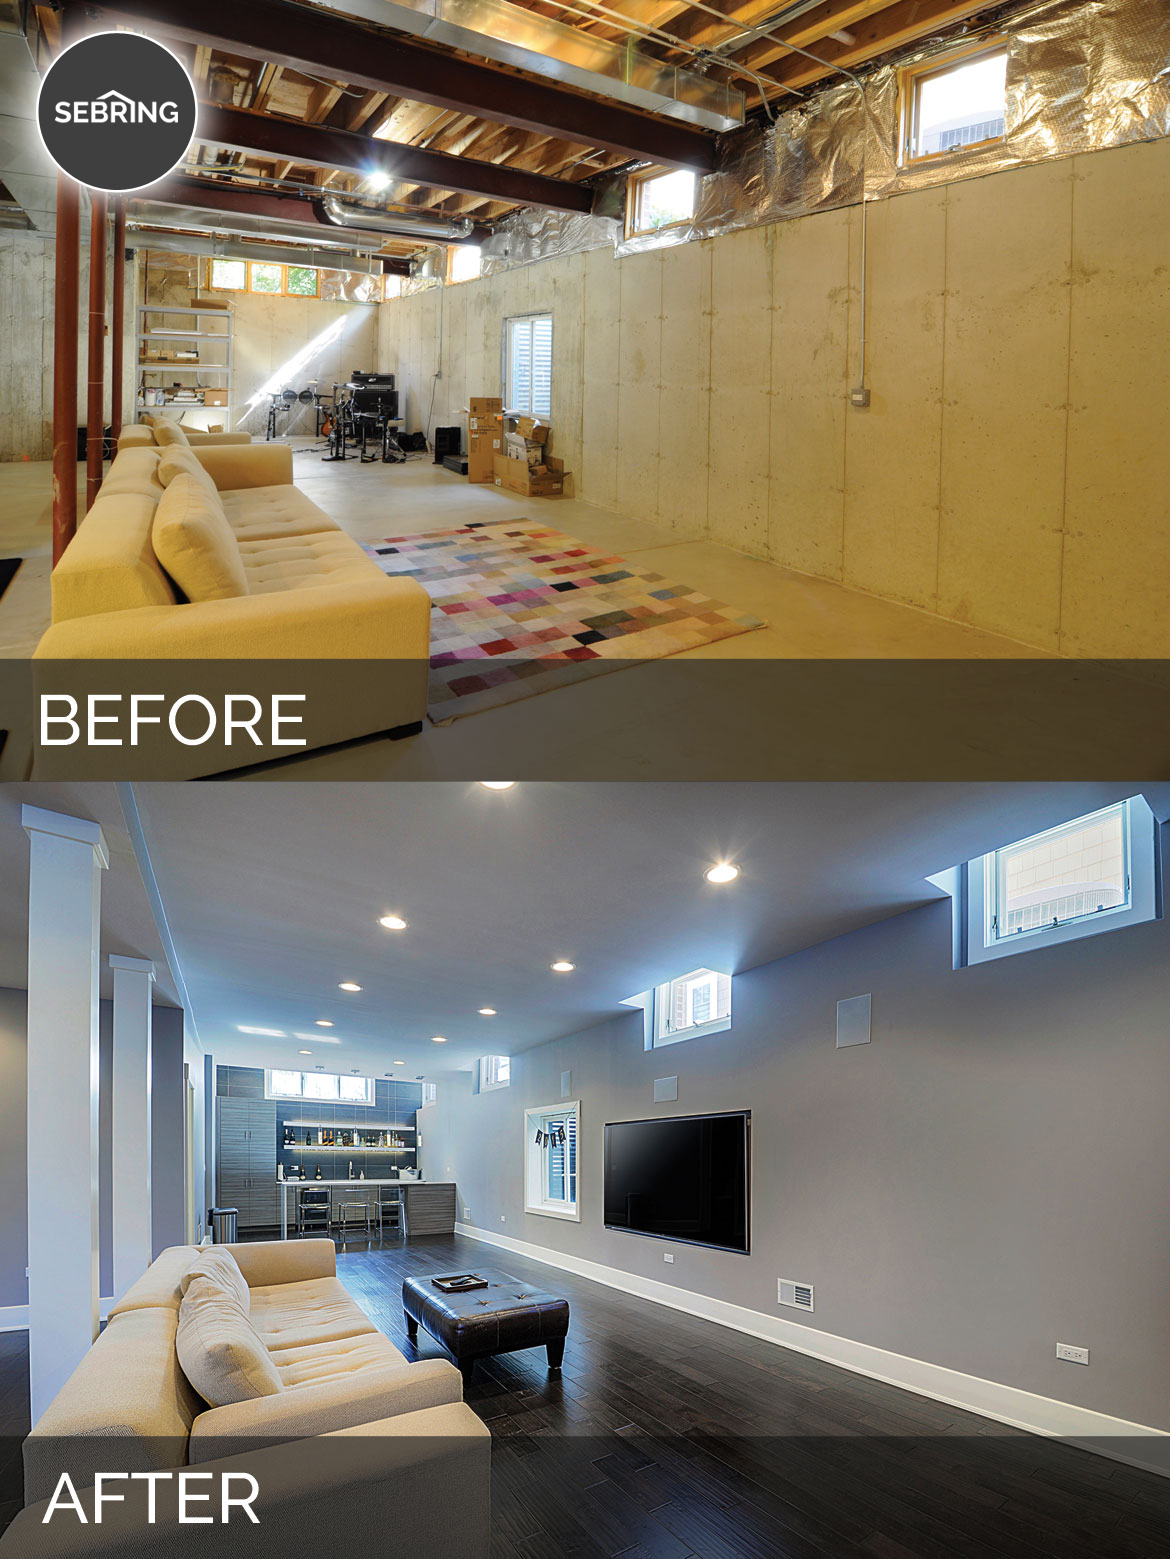 Sidd Amp Nisha S Basement Before Amp After Pictures Home